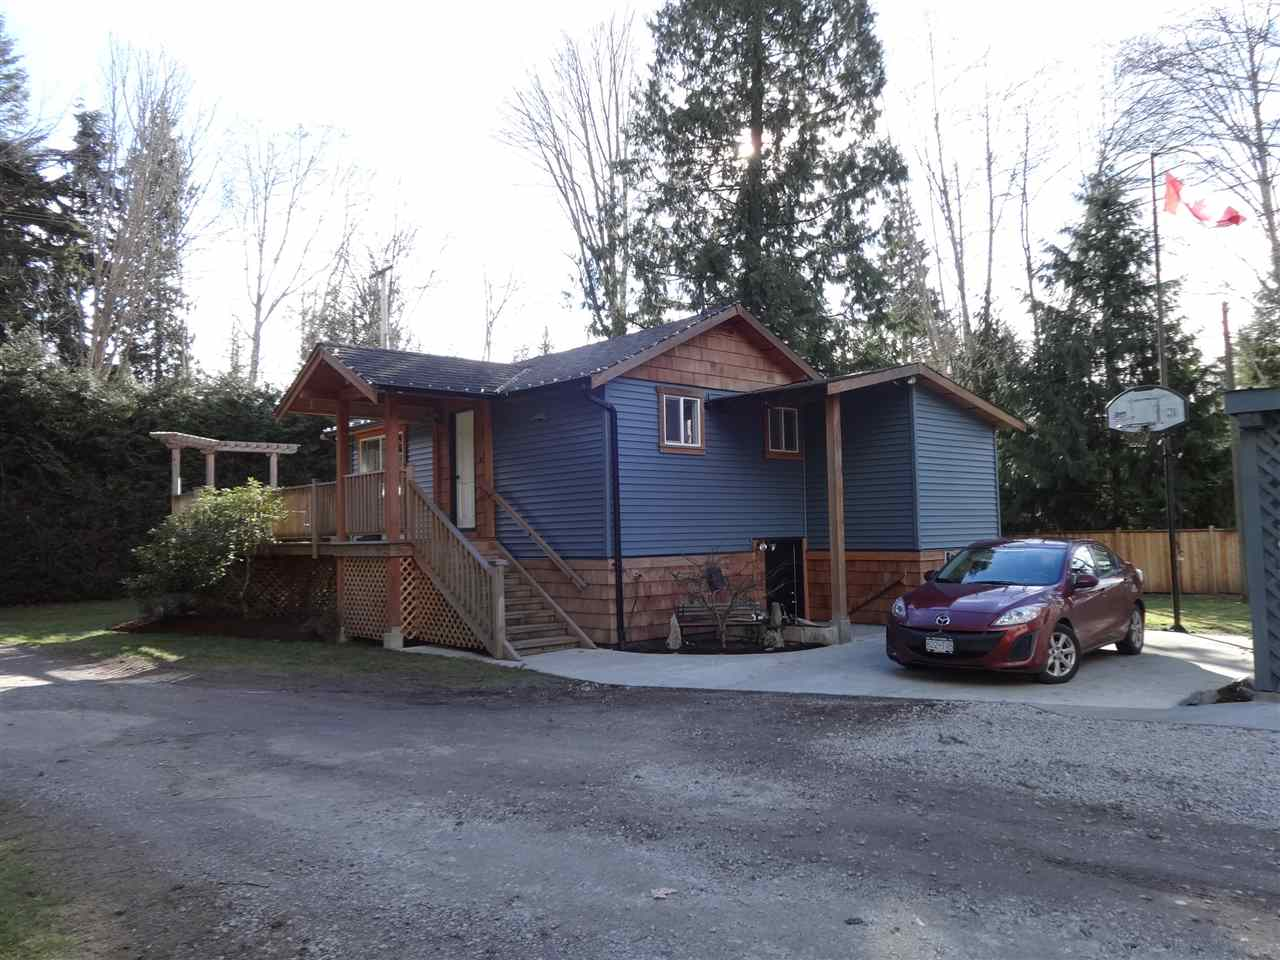 4462 SUNSHINE COAST HIGHWAY, Sechelt, BC V0N 3A1